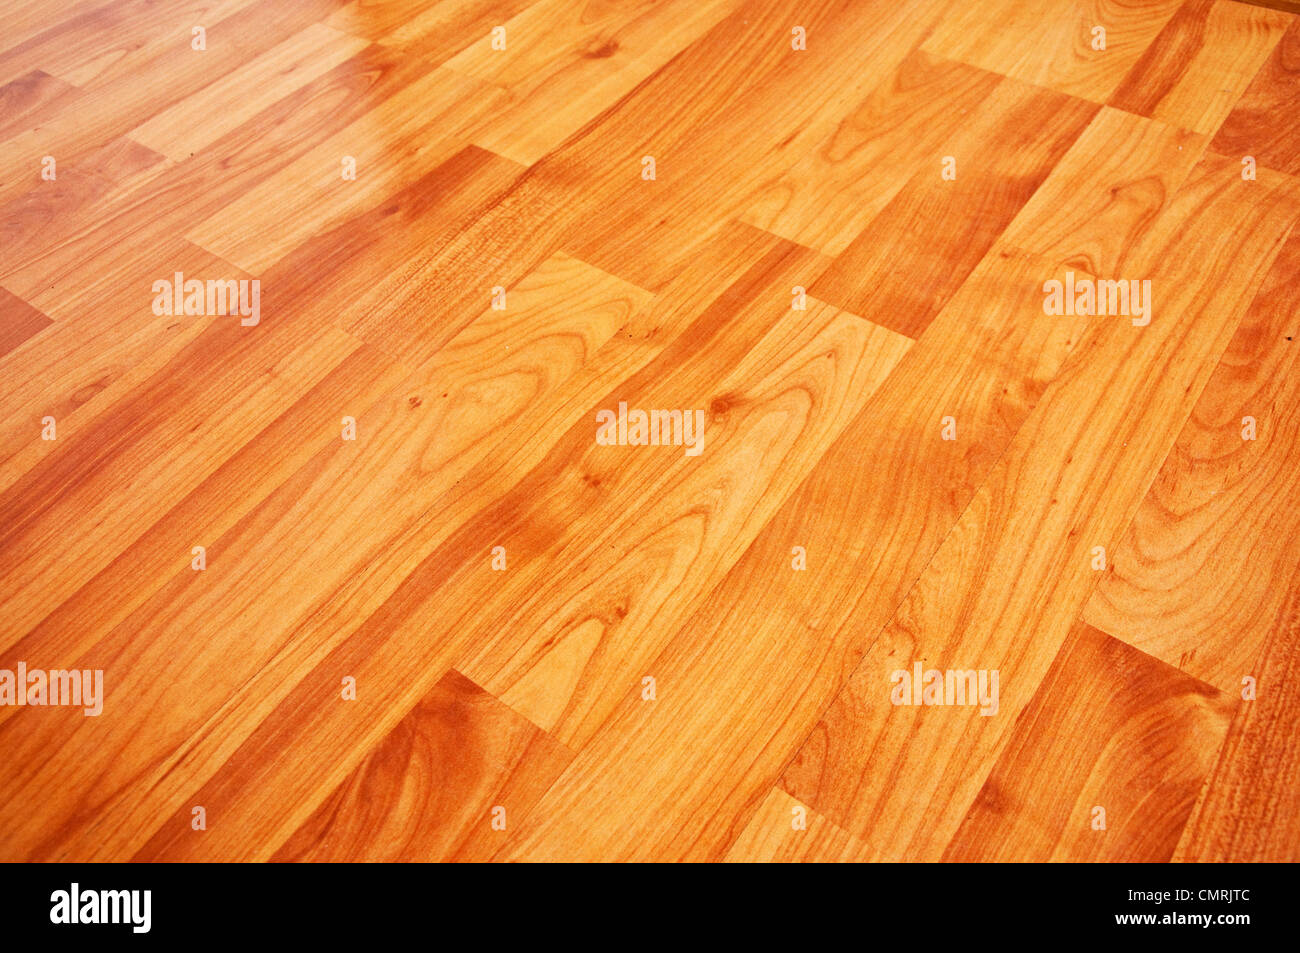 Close up detail of a beautiful wooden brown laminated floor - Stock Image